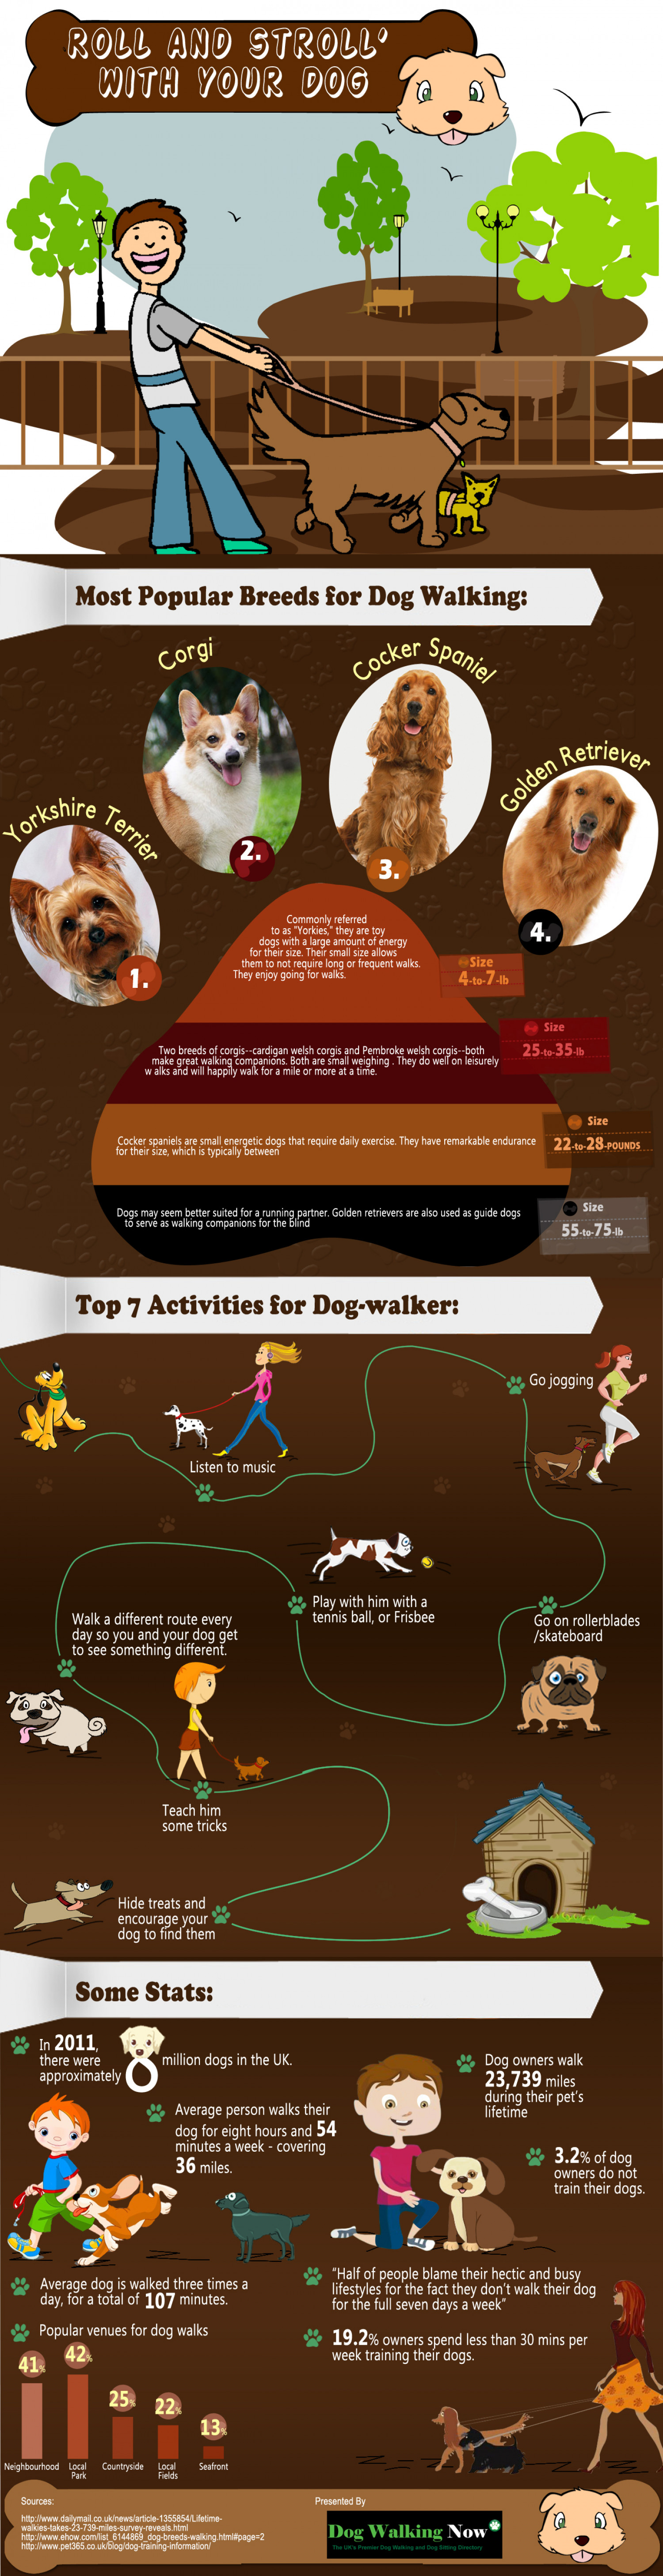 Dog Walkers: Roll & Stroll With Your Dog Infographic